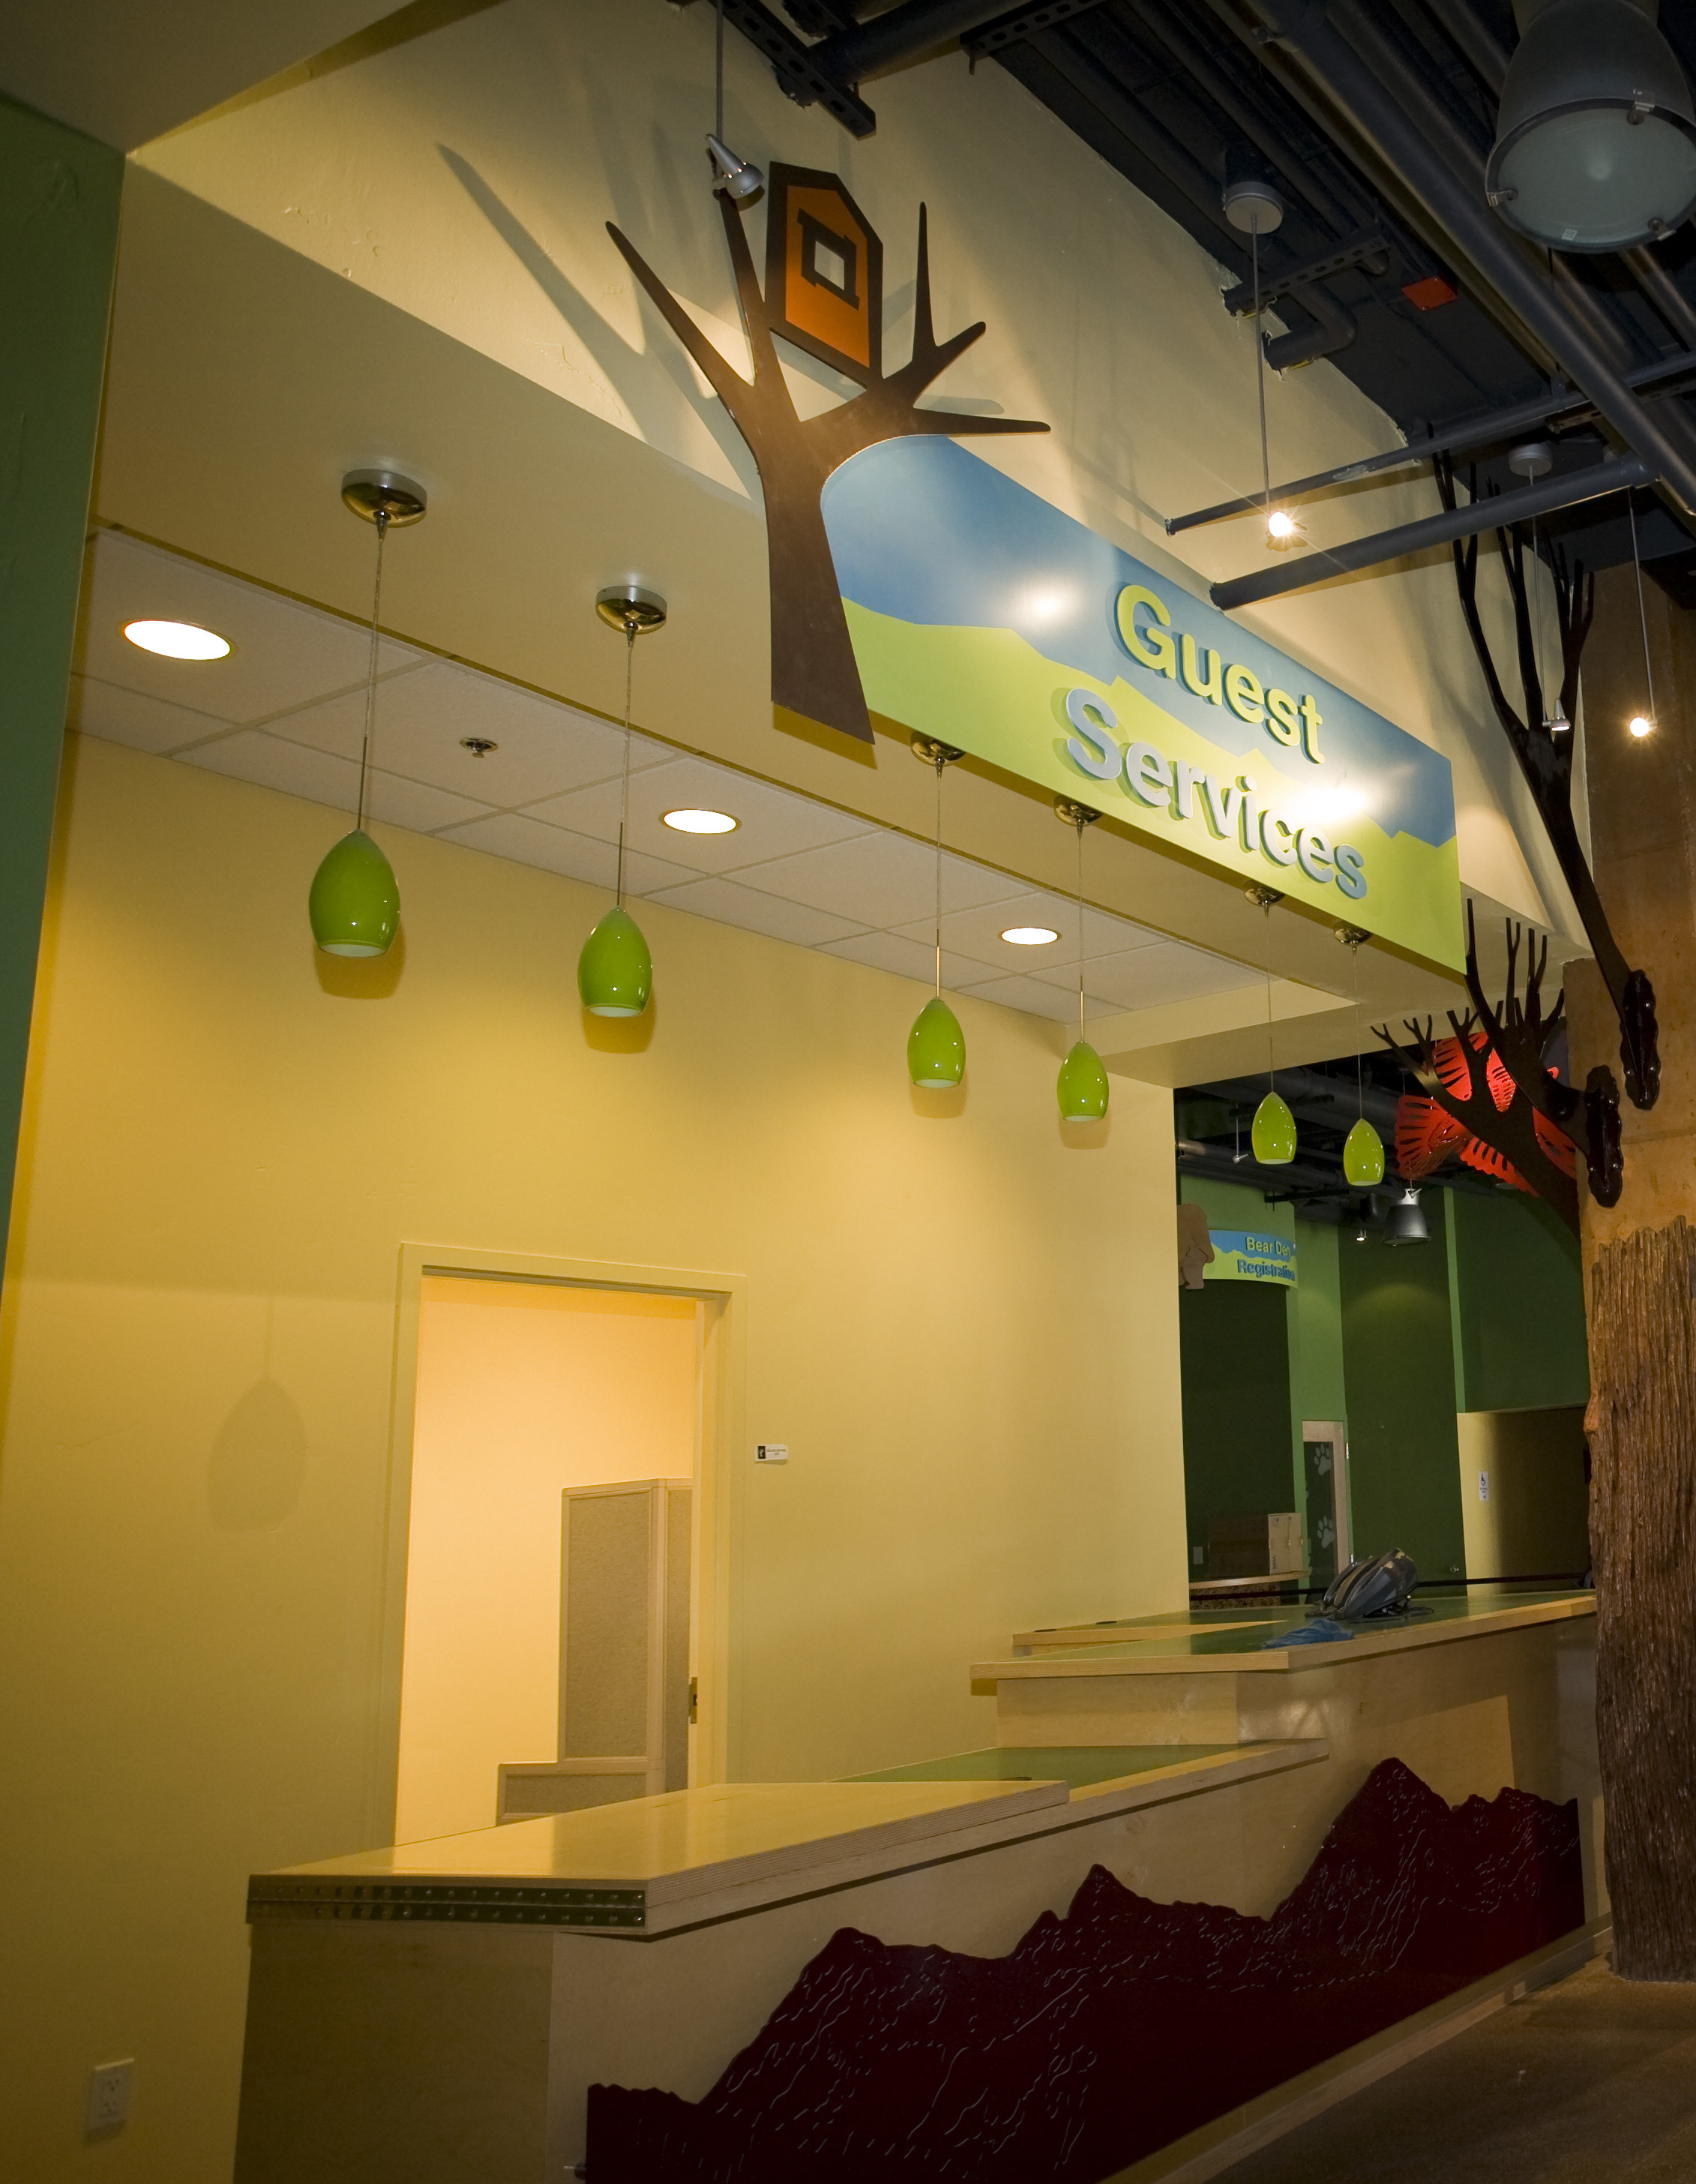 GuestServices-1.jpg